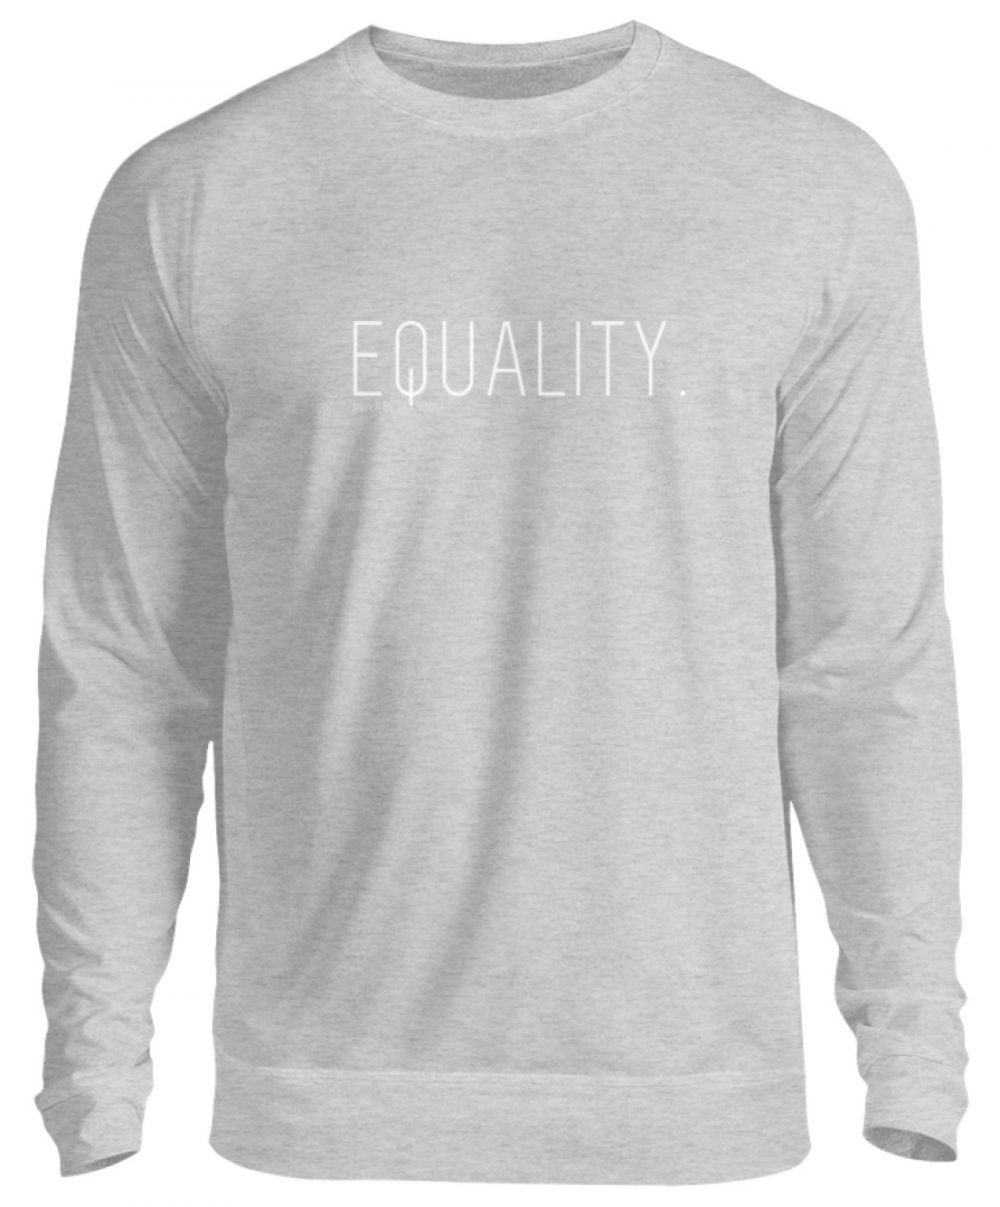 EQUALITY. - Unisex Pullover-17